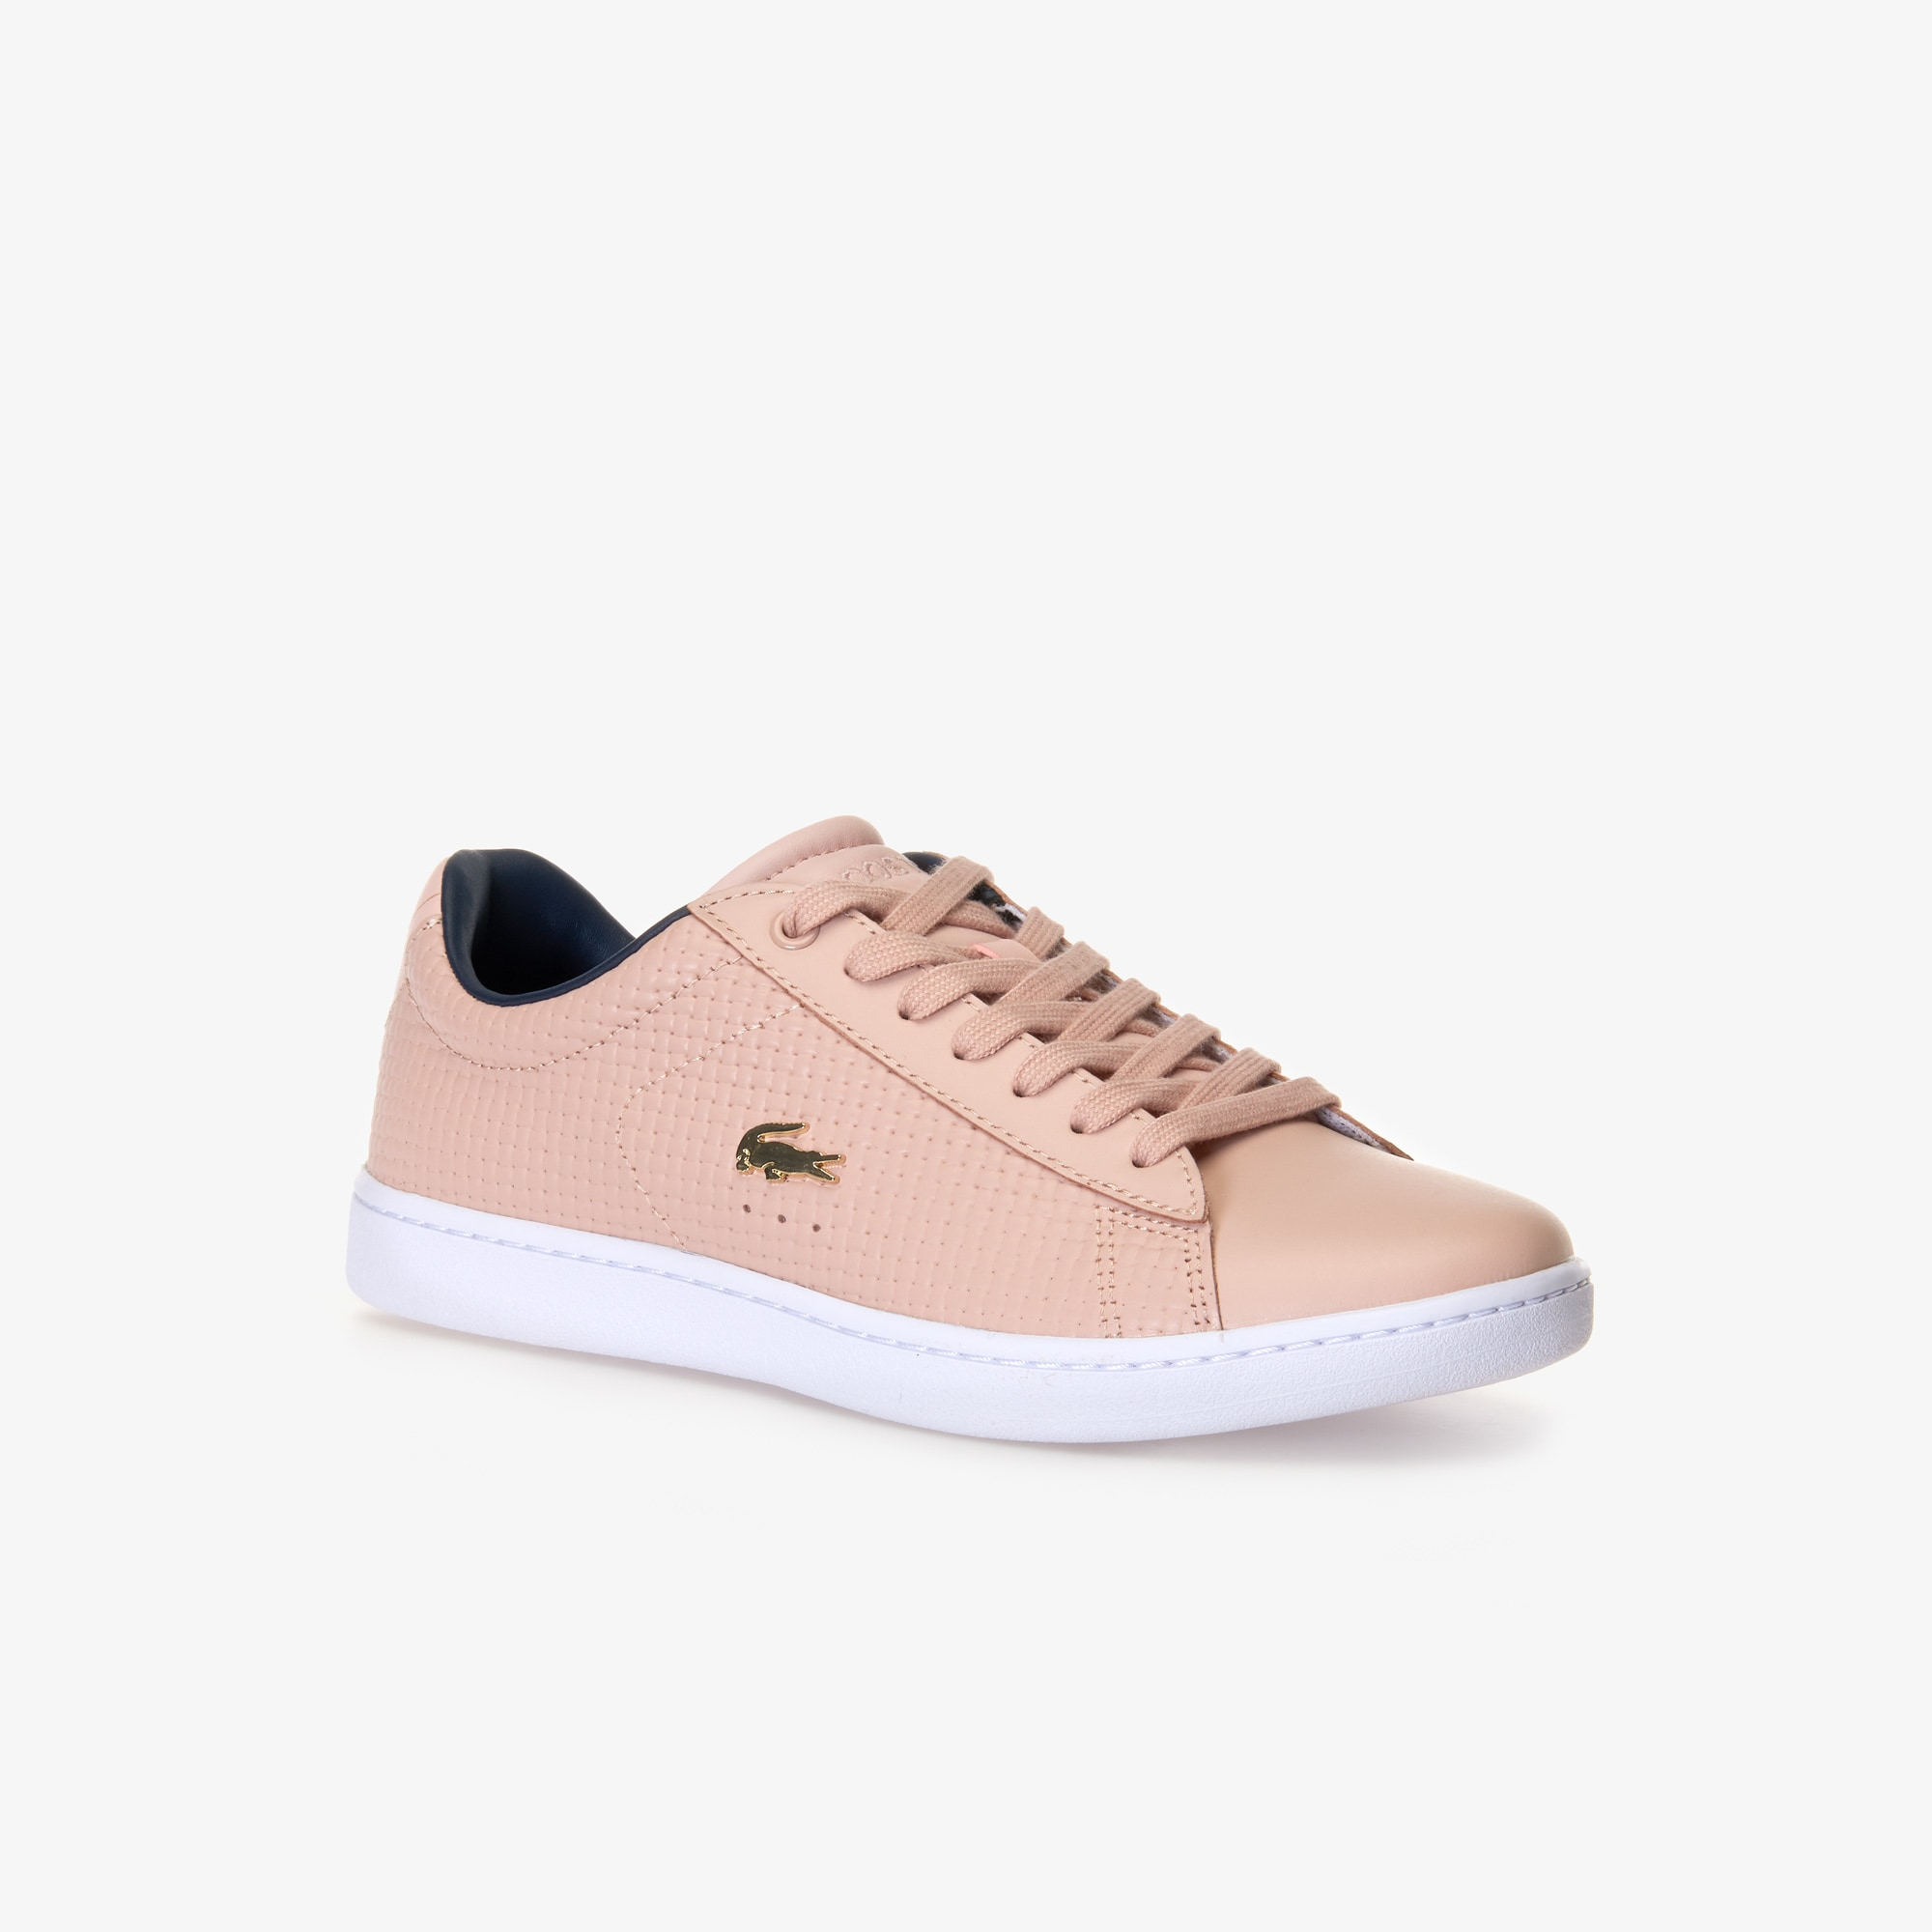 Women's Carnaby Evo Woven Leather Trainers